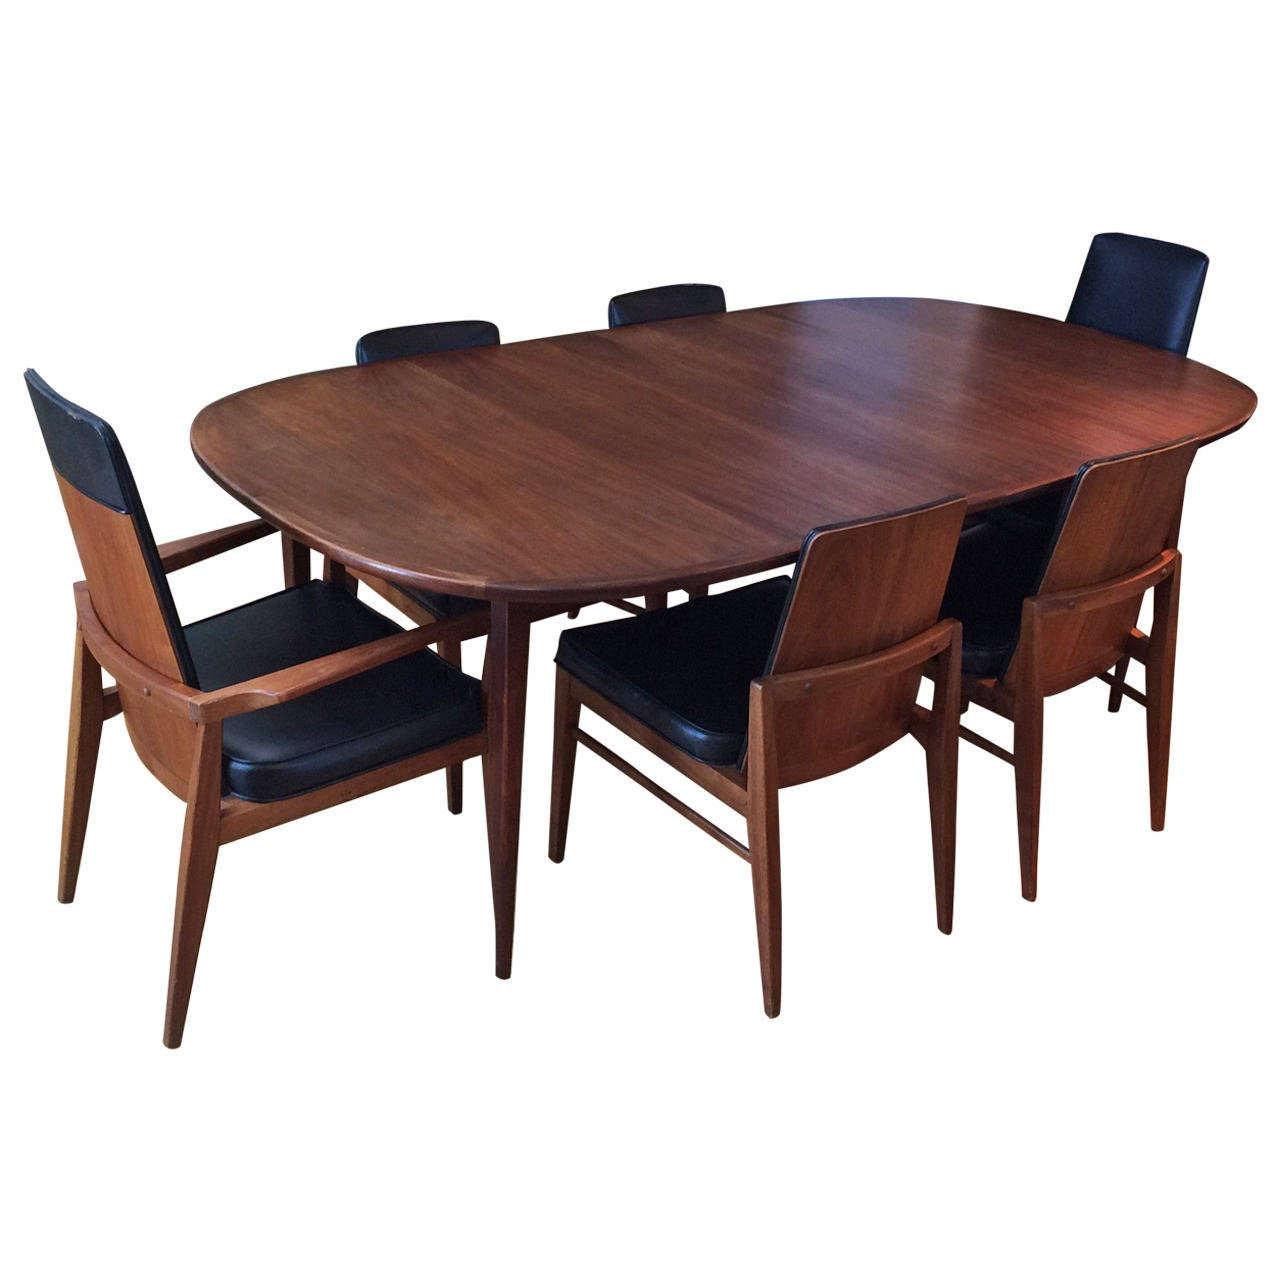 Mid century modern walnut dining set at 1stdibs for Dining room furniture modern